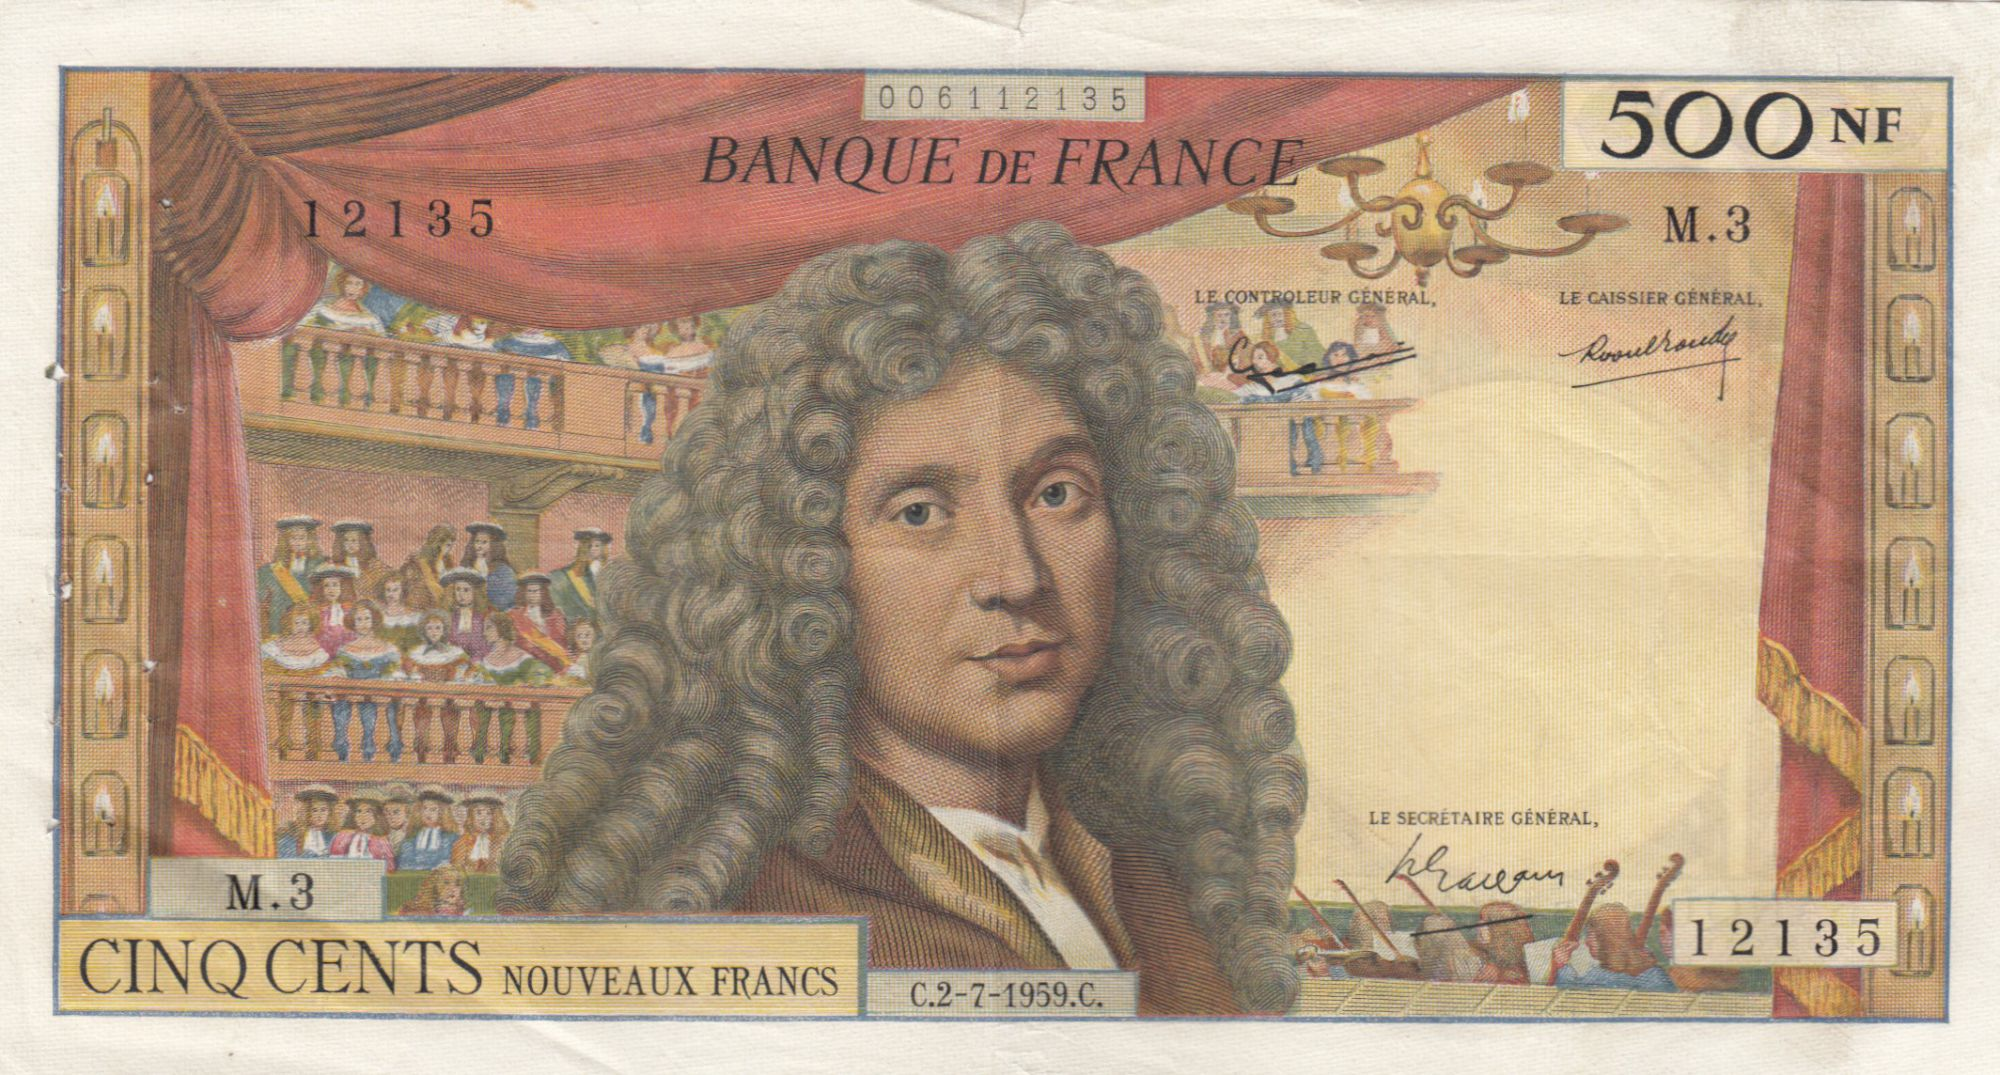 France 500 NF Moliere - 02-07-1959 Serial M.3 - NICE vf